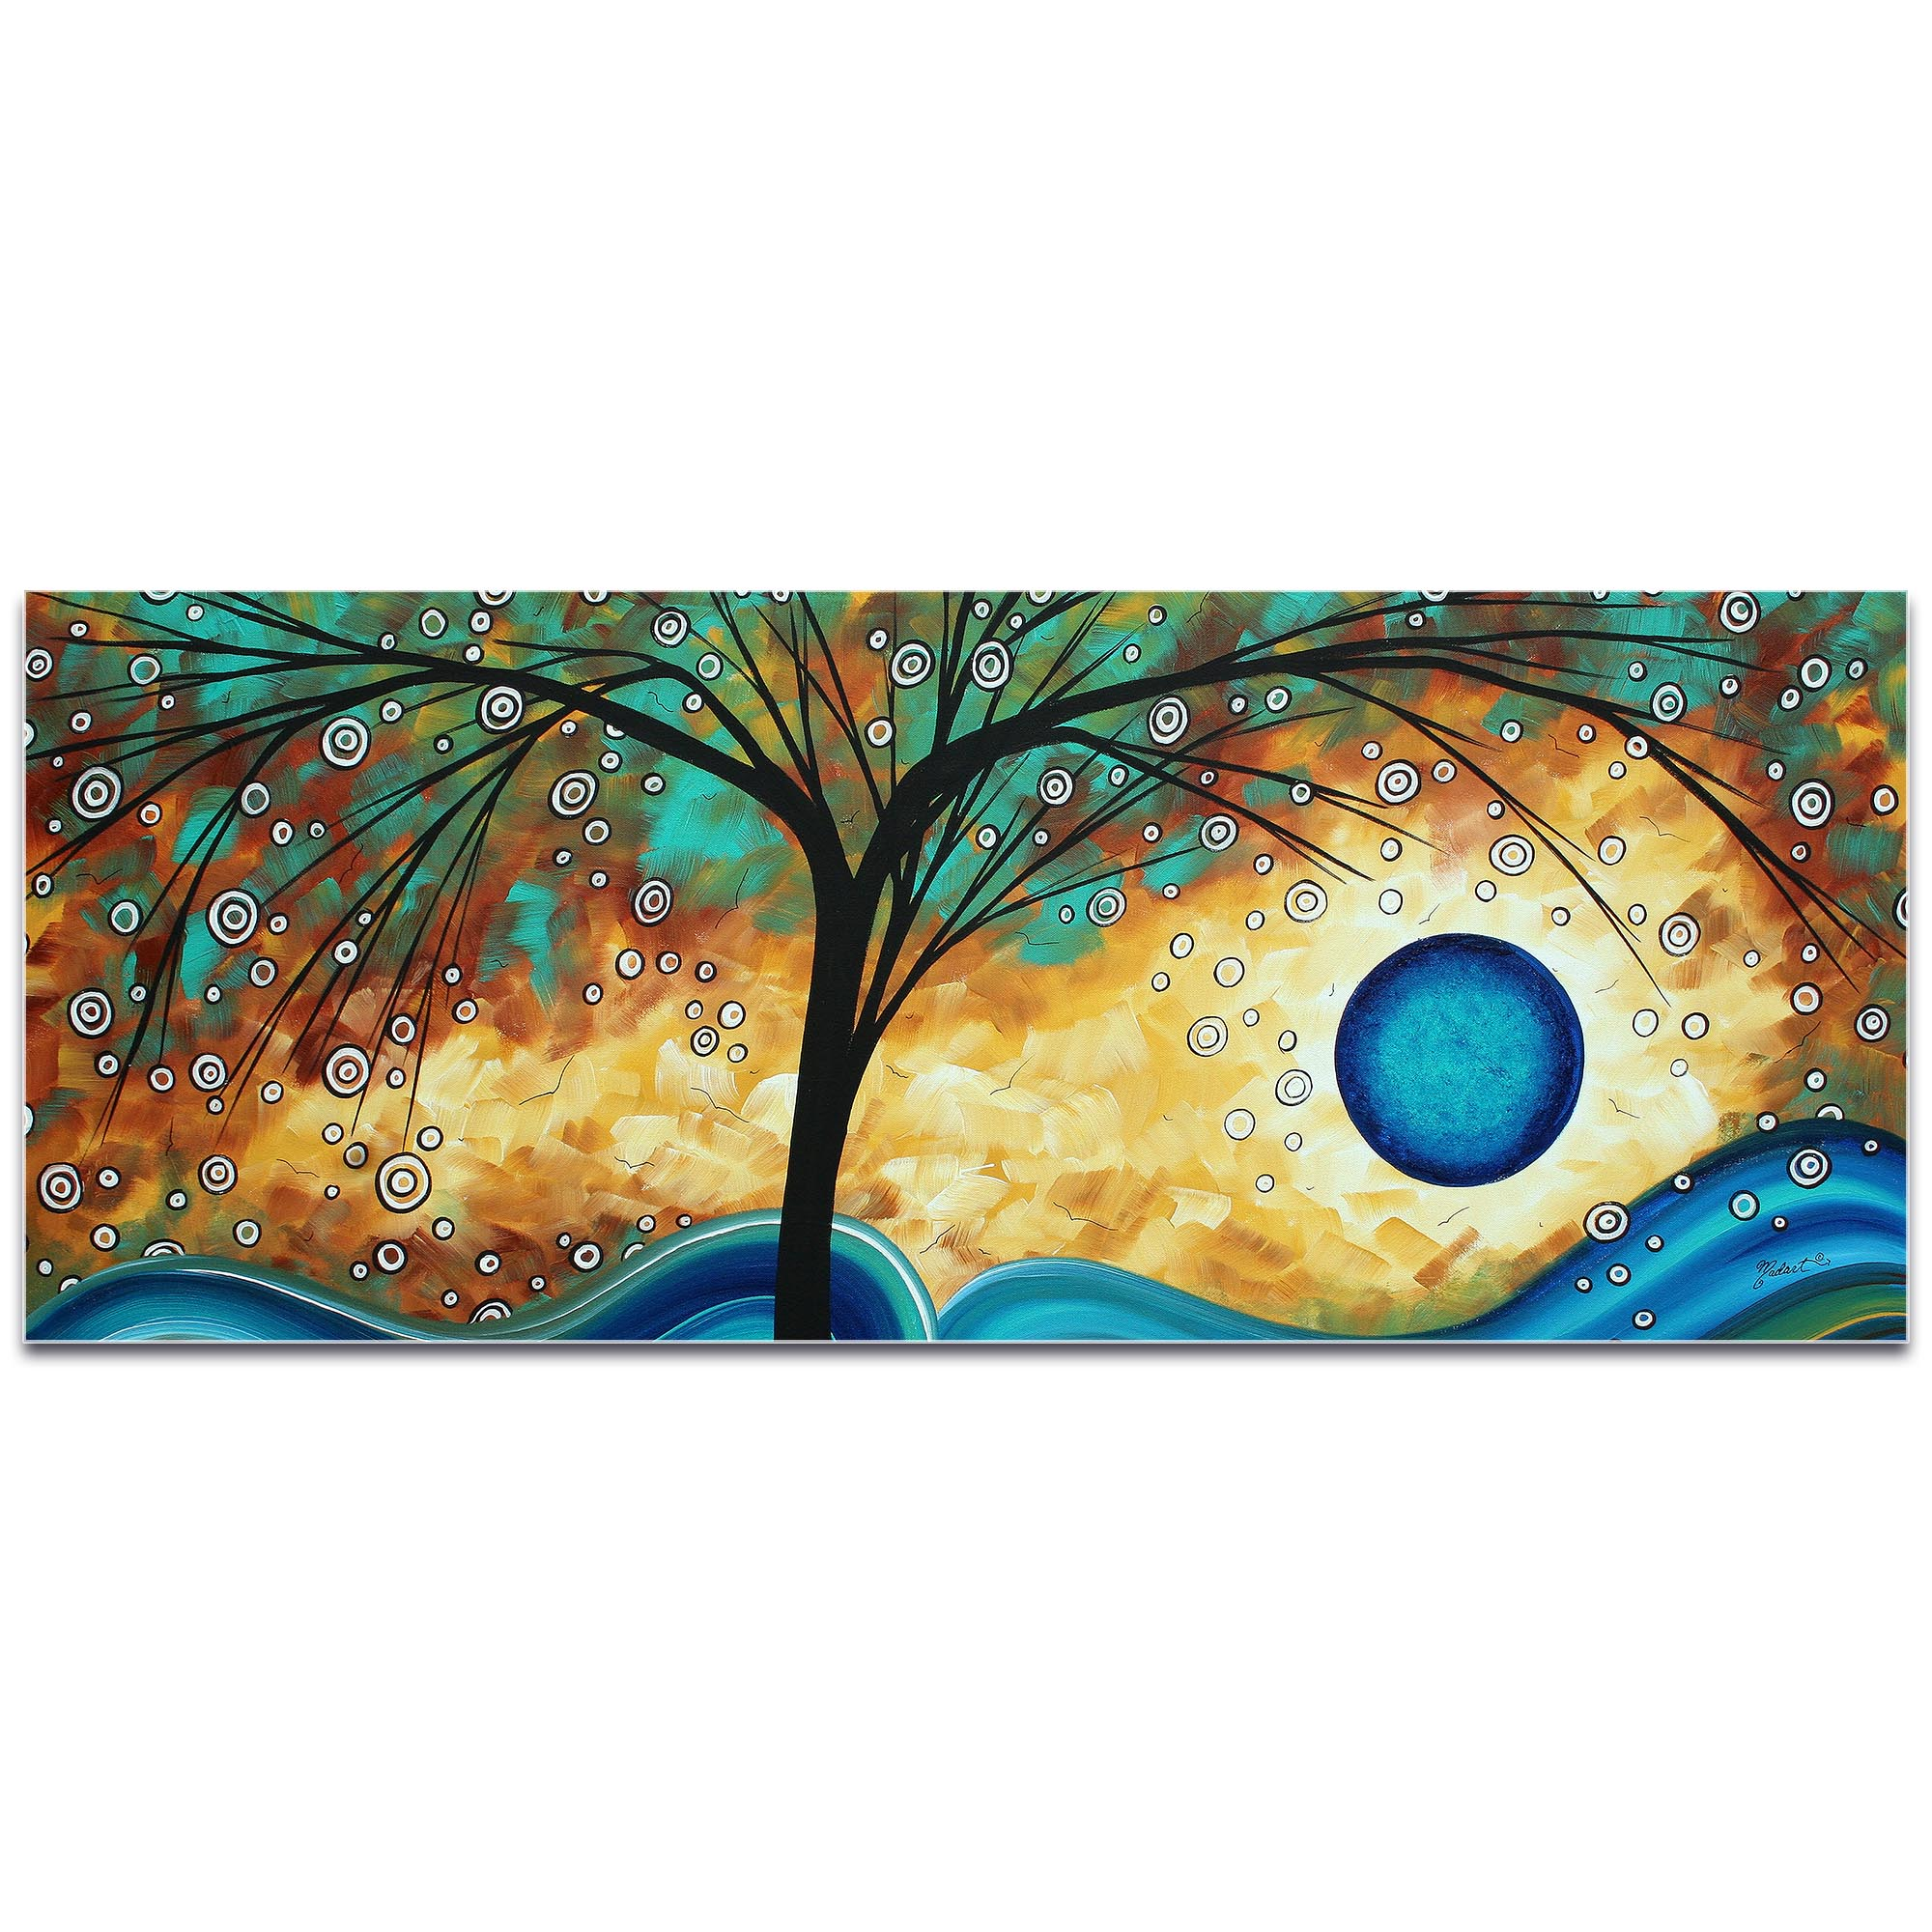 Landscape Painting 'Summer Blooms' - Abstract Tree Art on Metal or Acrylic - Image 2